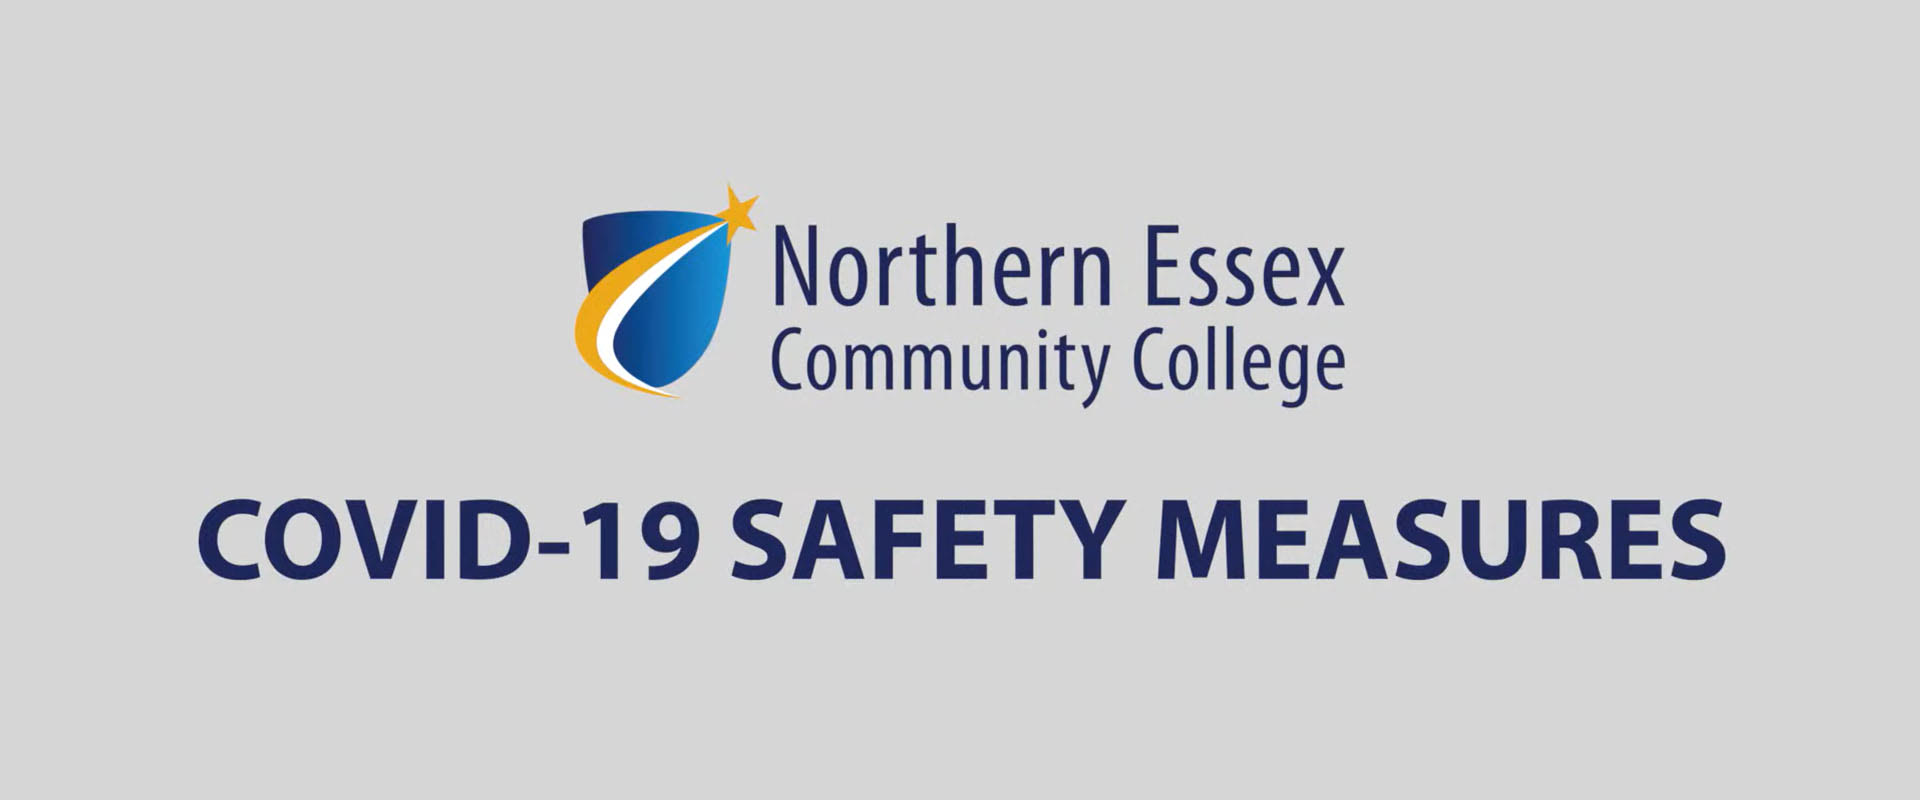 NECC Logo and COVID-19 Safety Measures